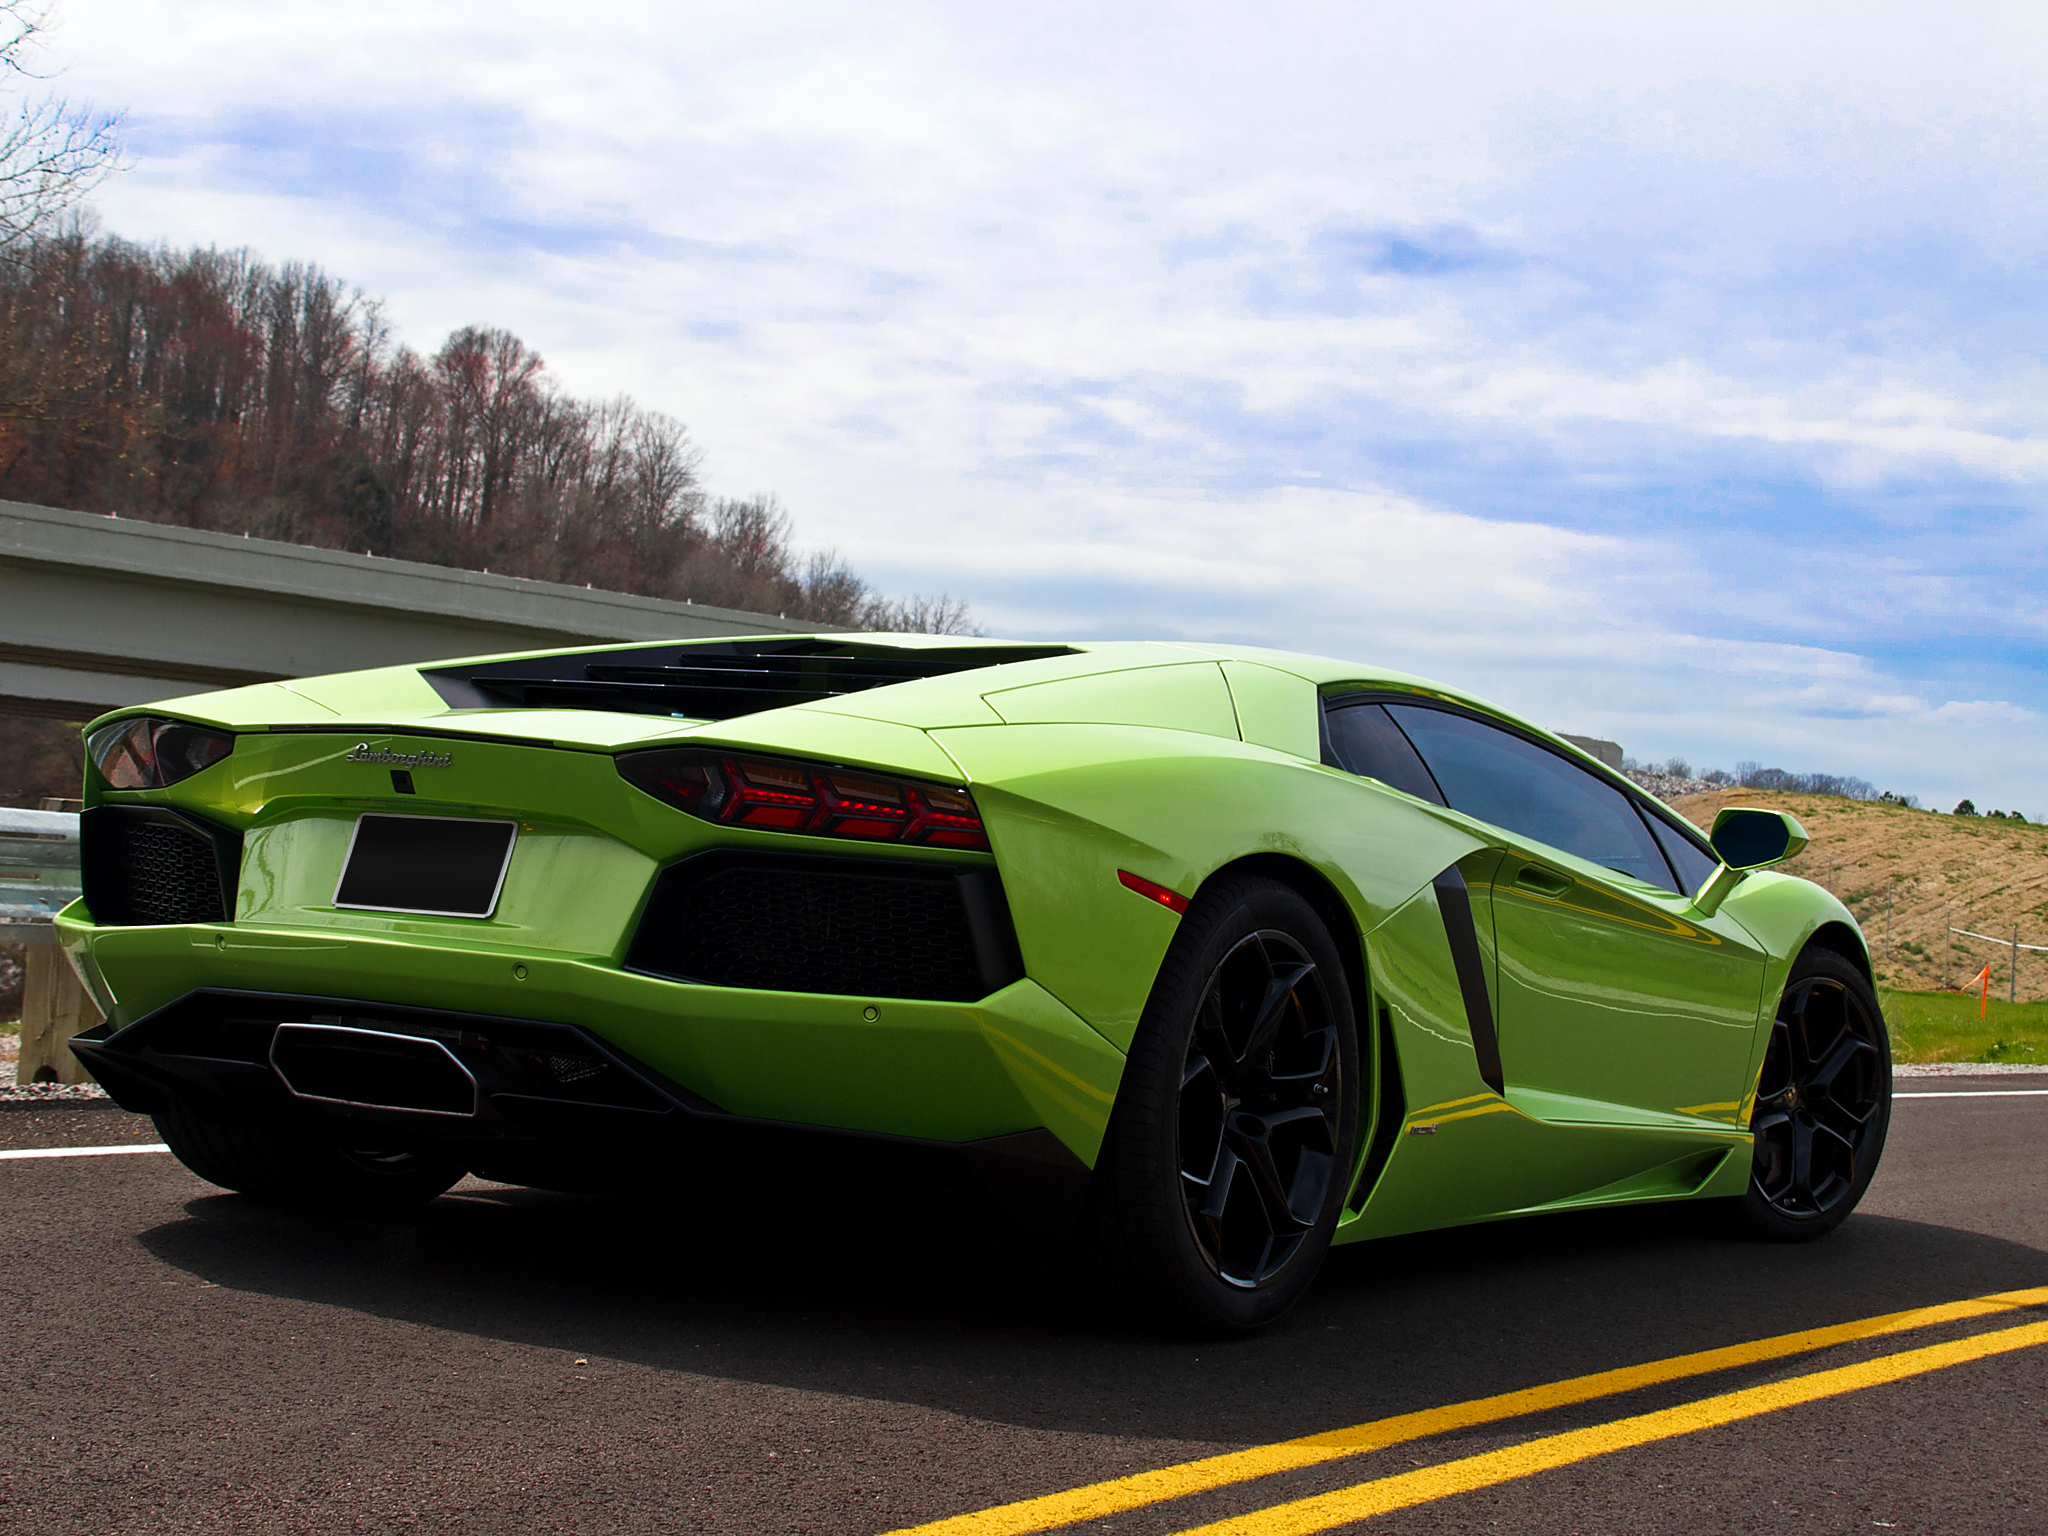 Wallpapers lamborghini aventador lp700 4 aventador road sky tail 2048x1536